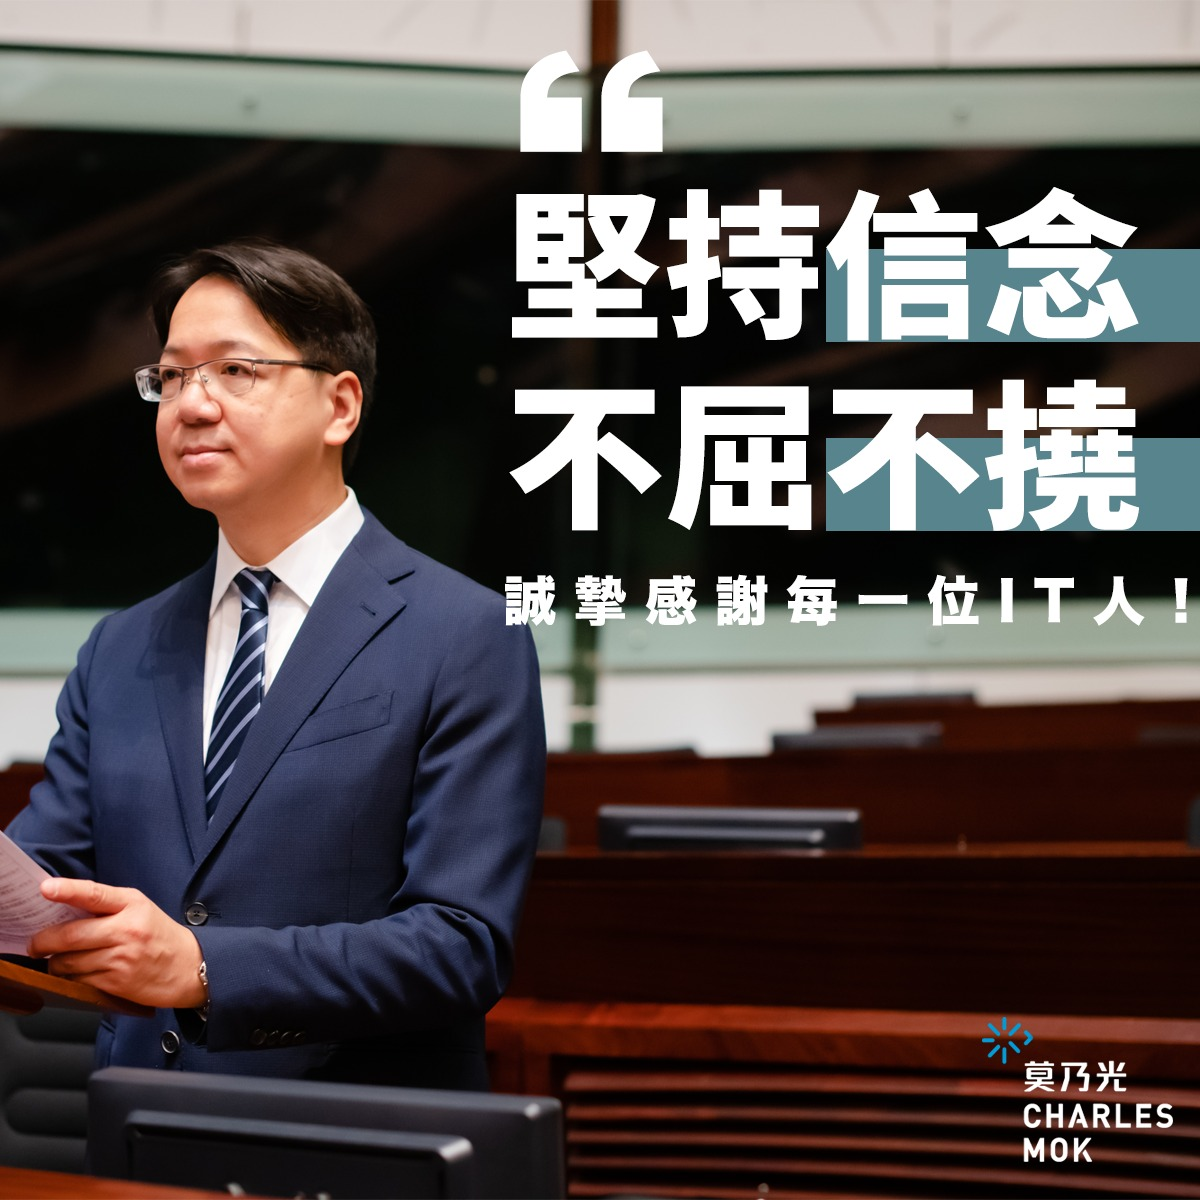 link to [Press release] Charles Mok: Carrie Lam's 2019 Policy Address fails to address the real issues